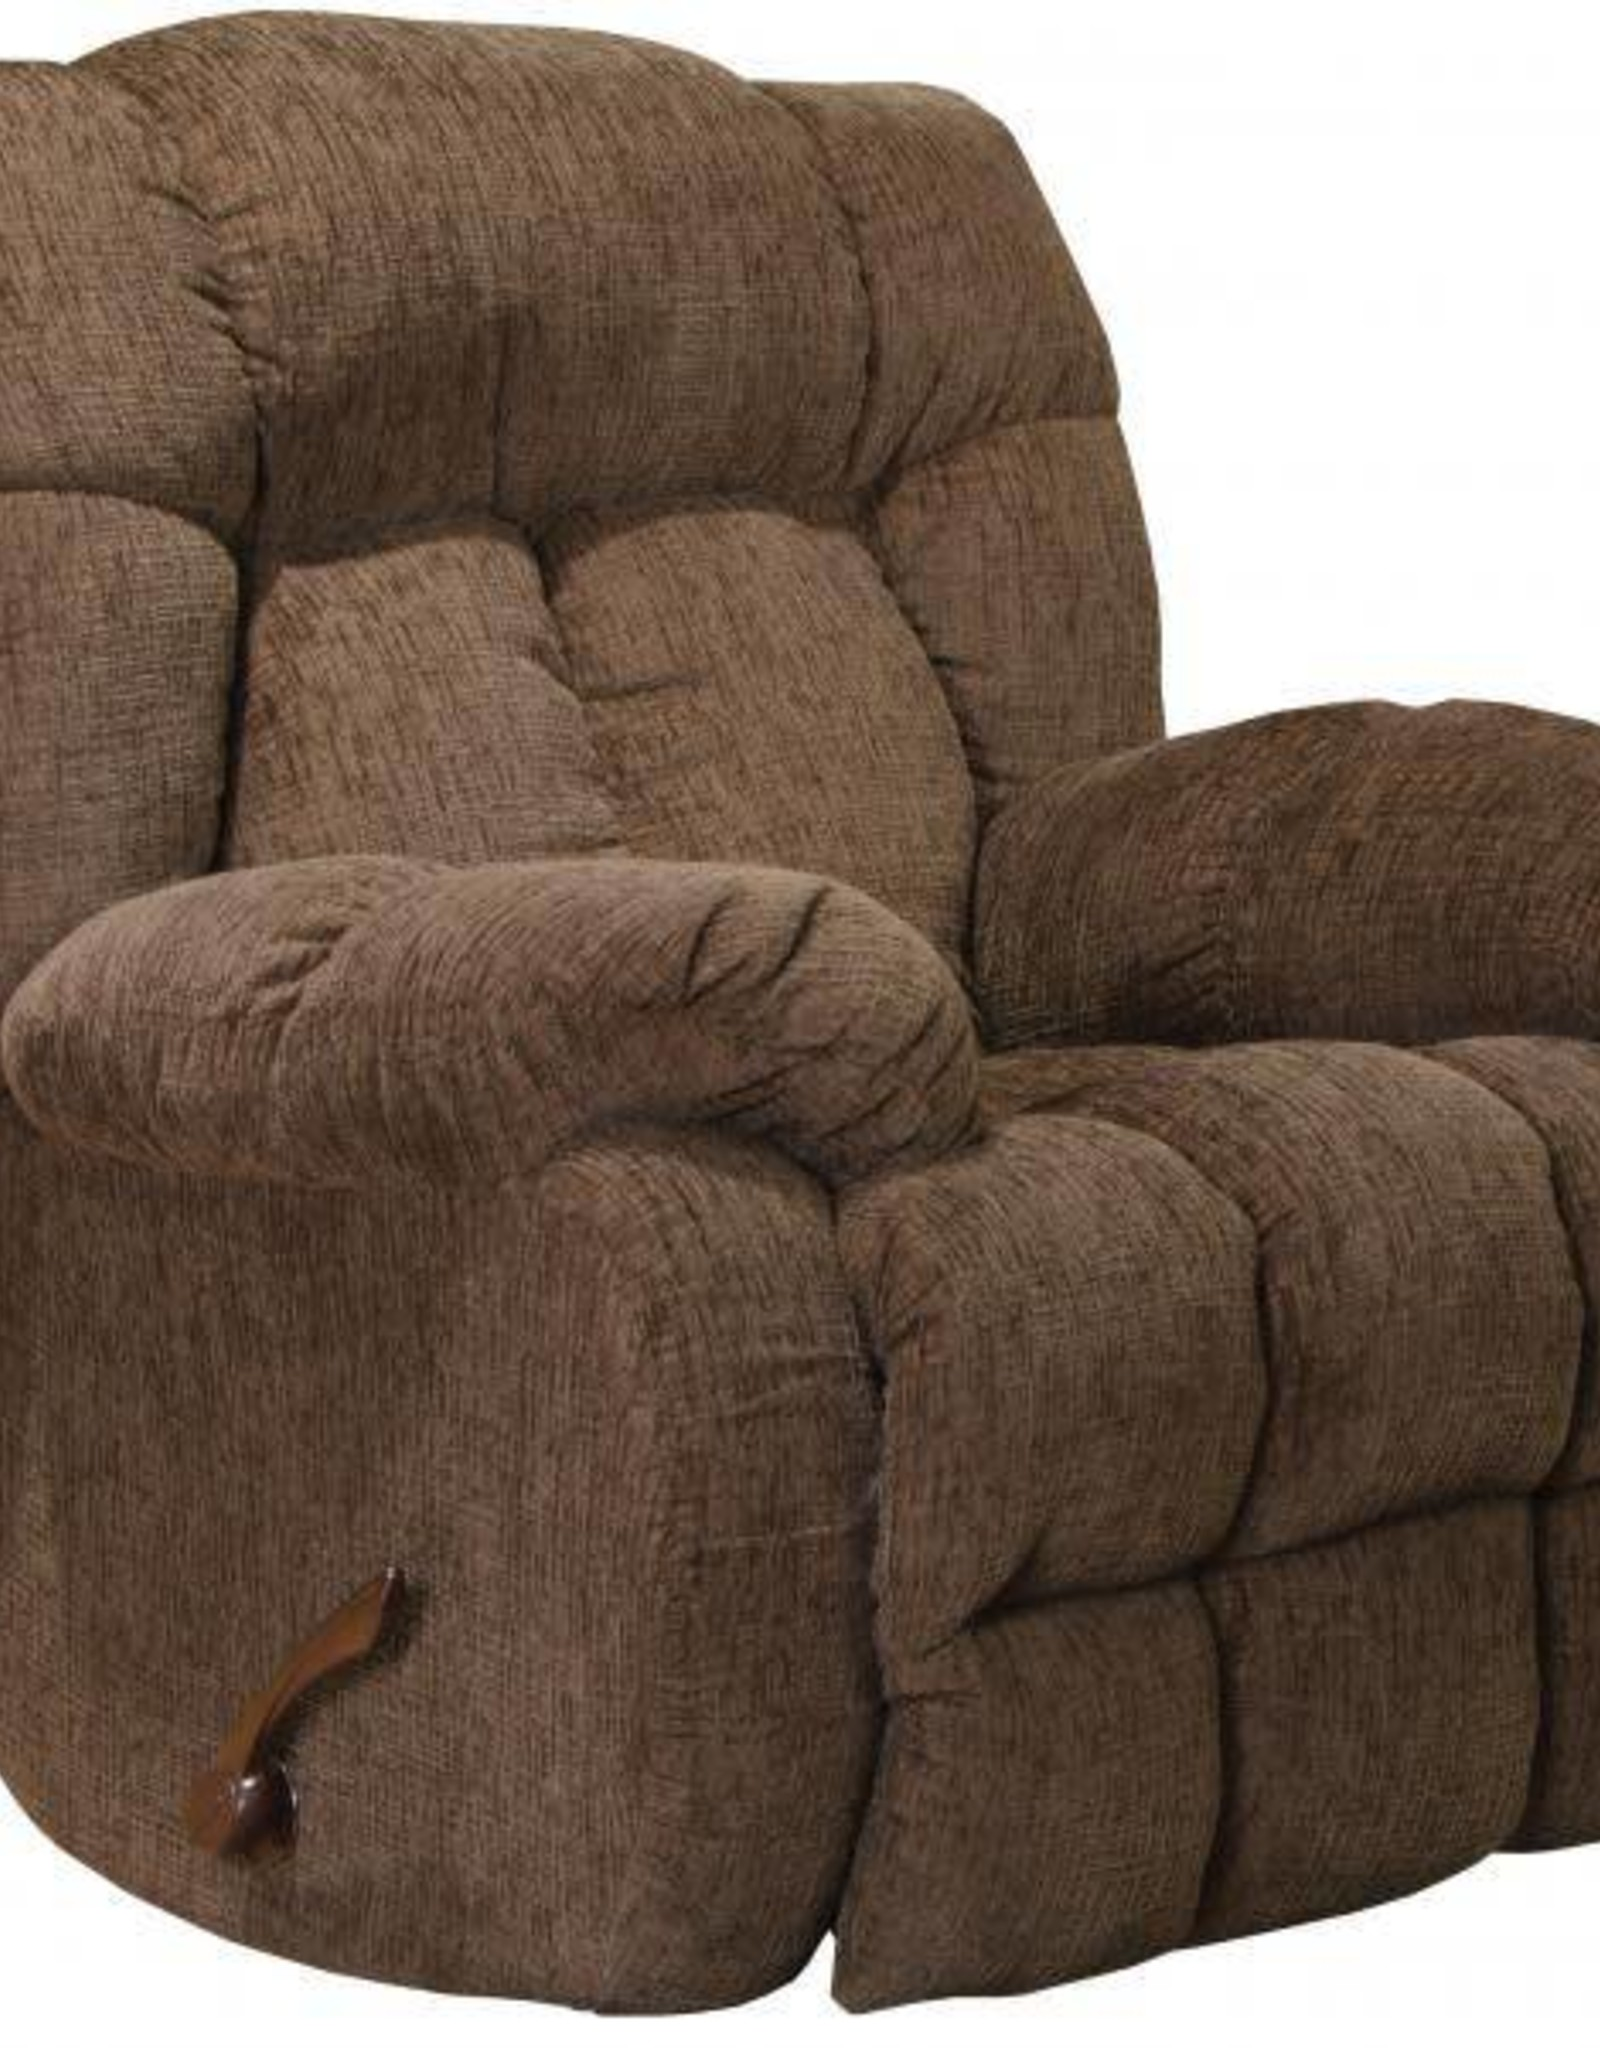 Capital Bedding Brody Chocolate Recliner